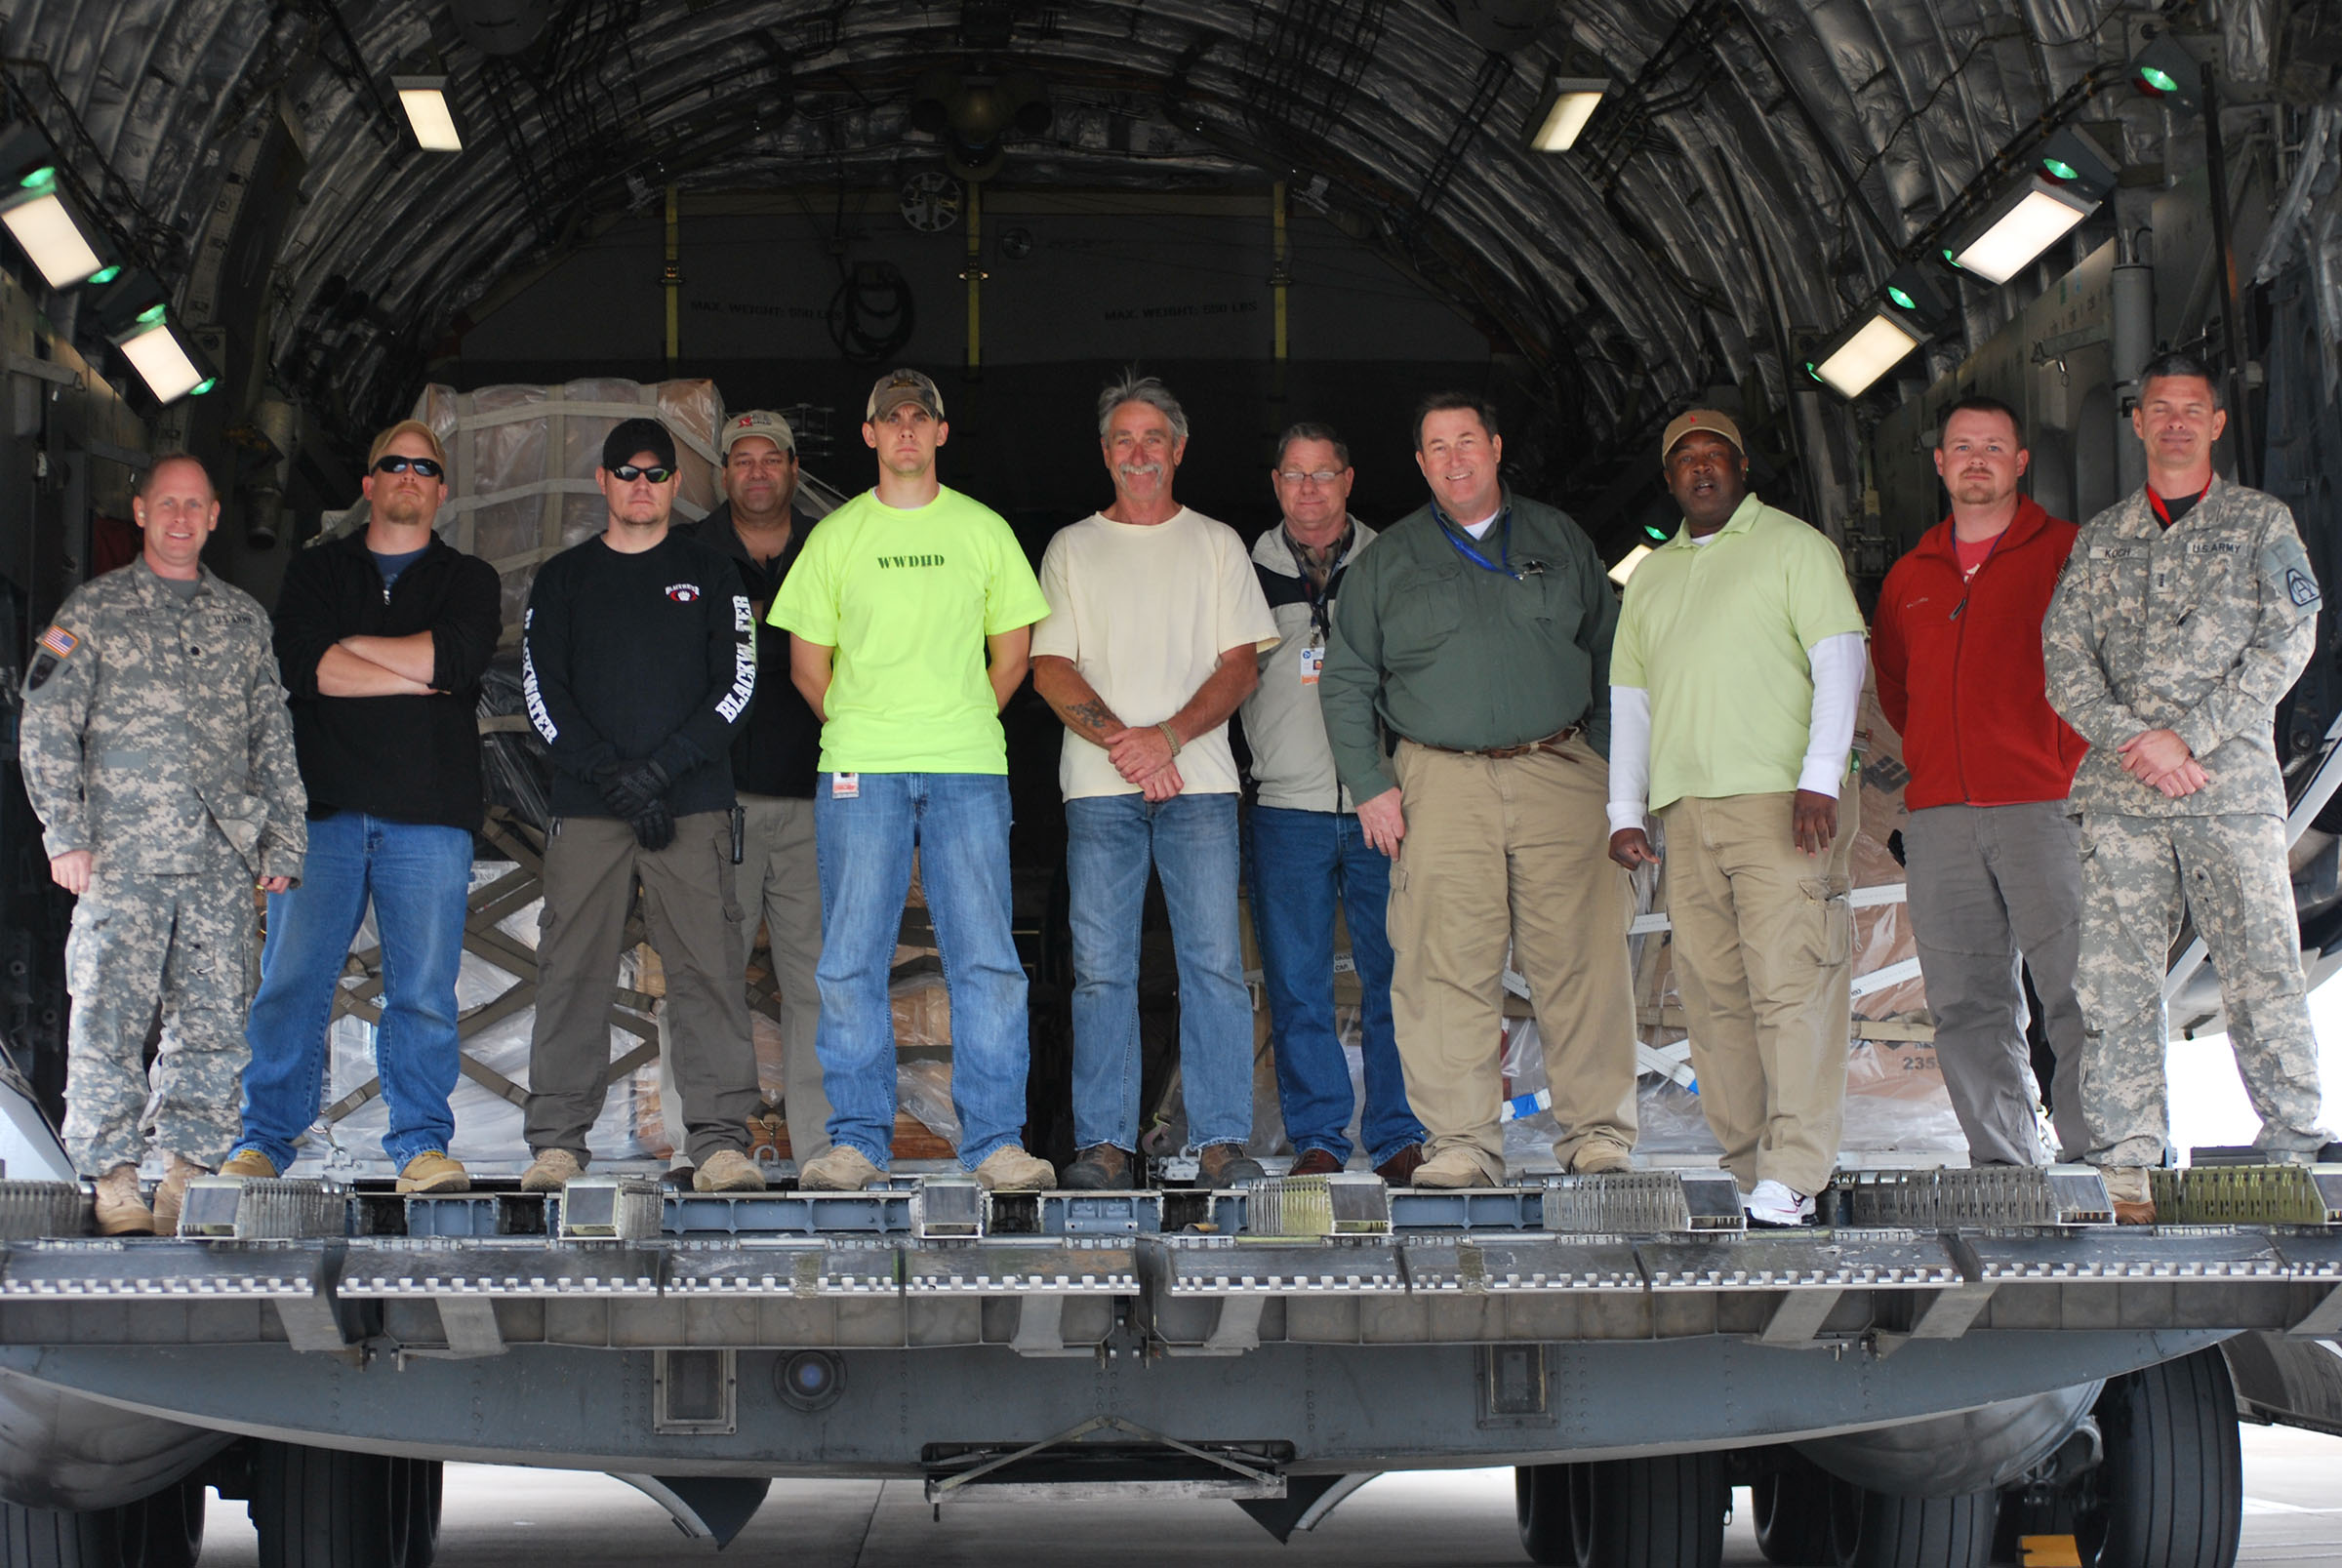 Lt. Col. James Mills (far left) and his team pose for a photo inside a C-17, just before taking off to deliver three IA-407 helicopters to Iraq in April 2013